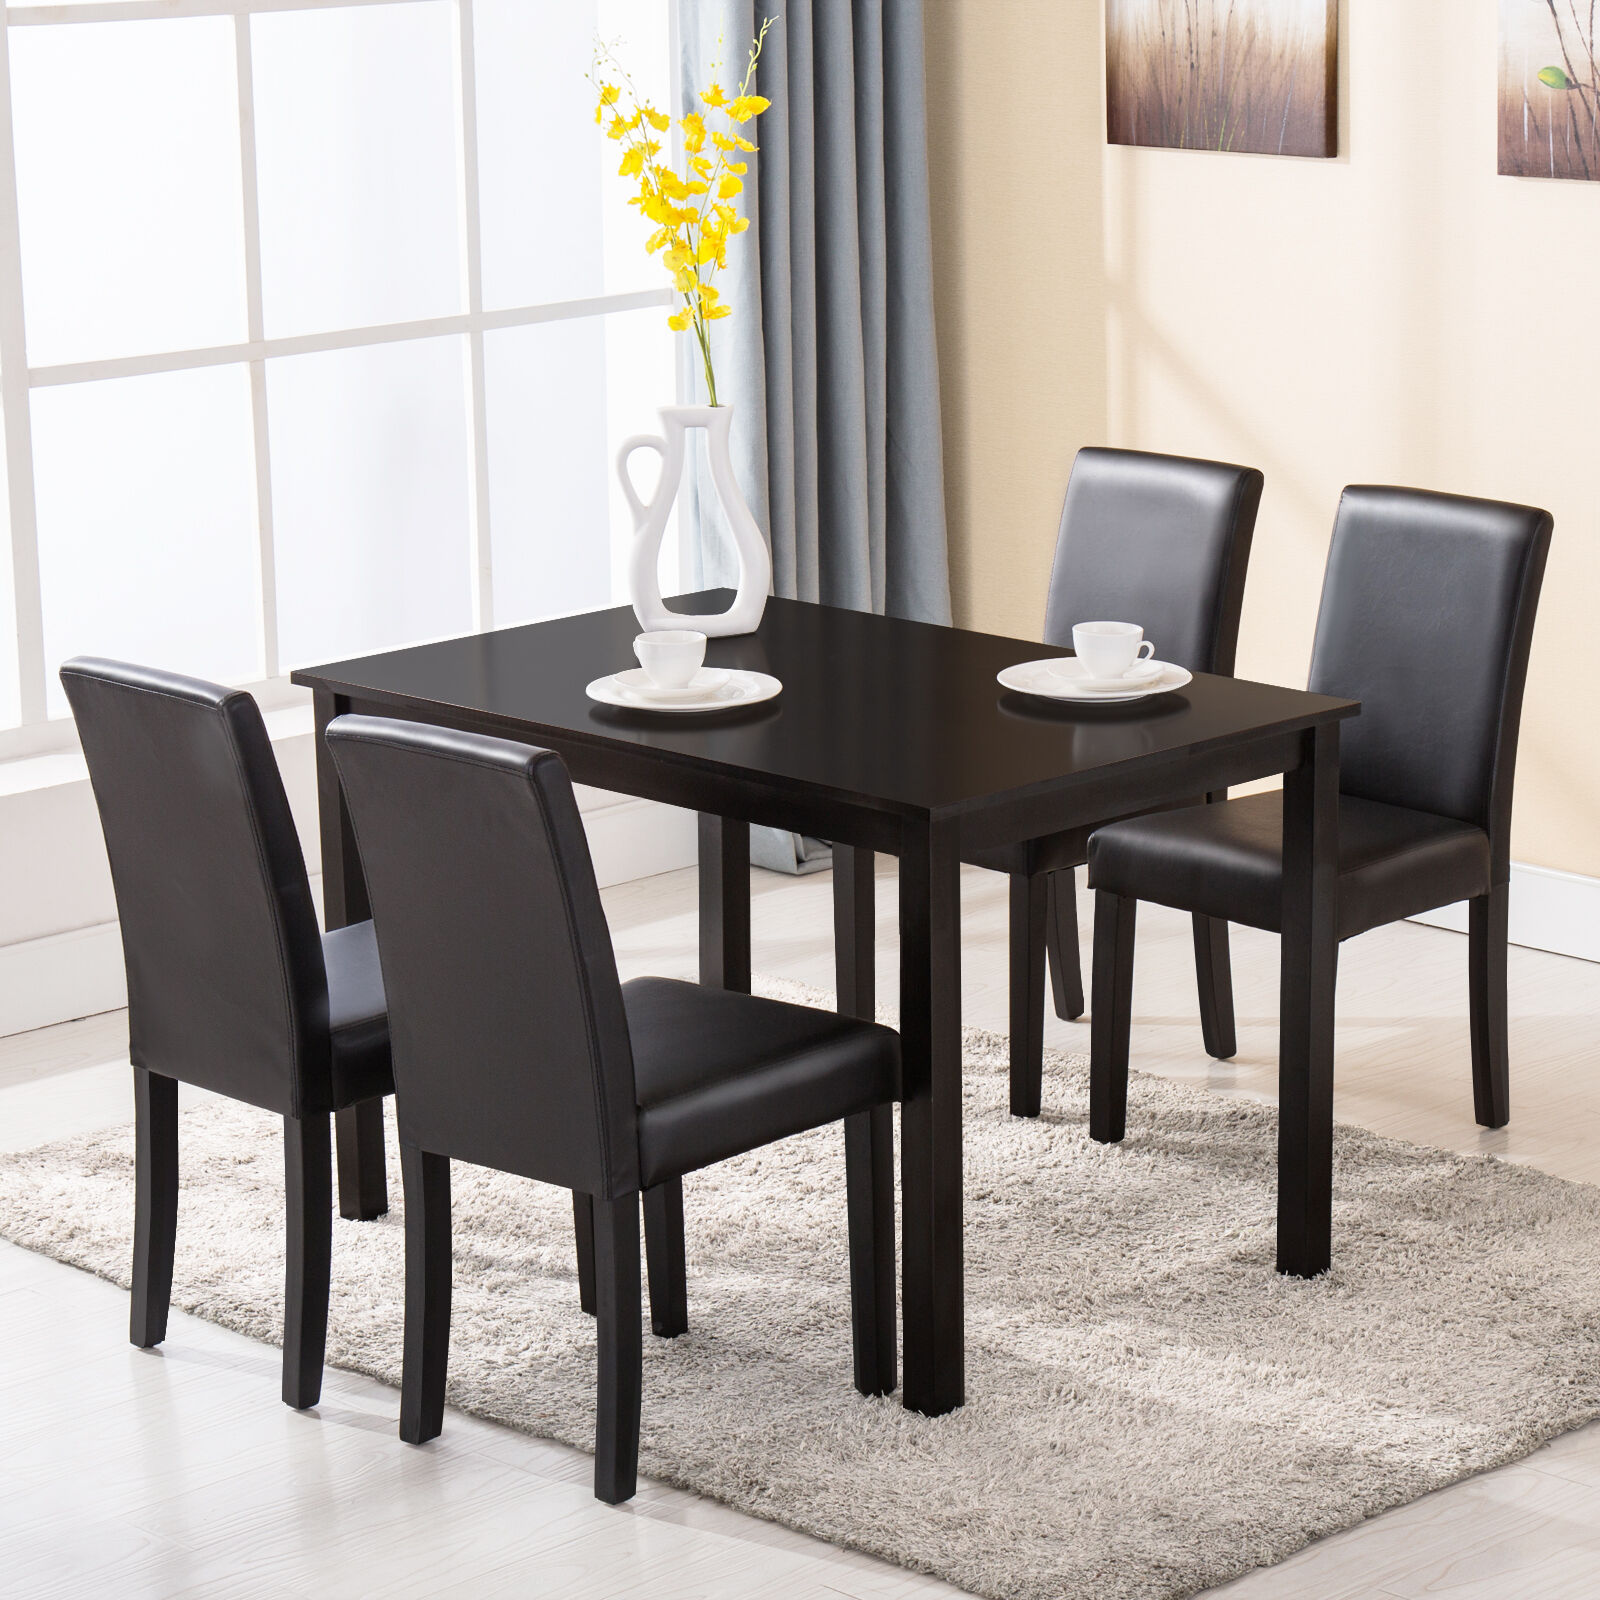 5 piece dining table set 4 chairs wood kitchen dinette for Dining room table for 4